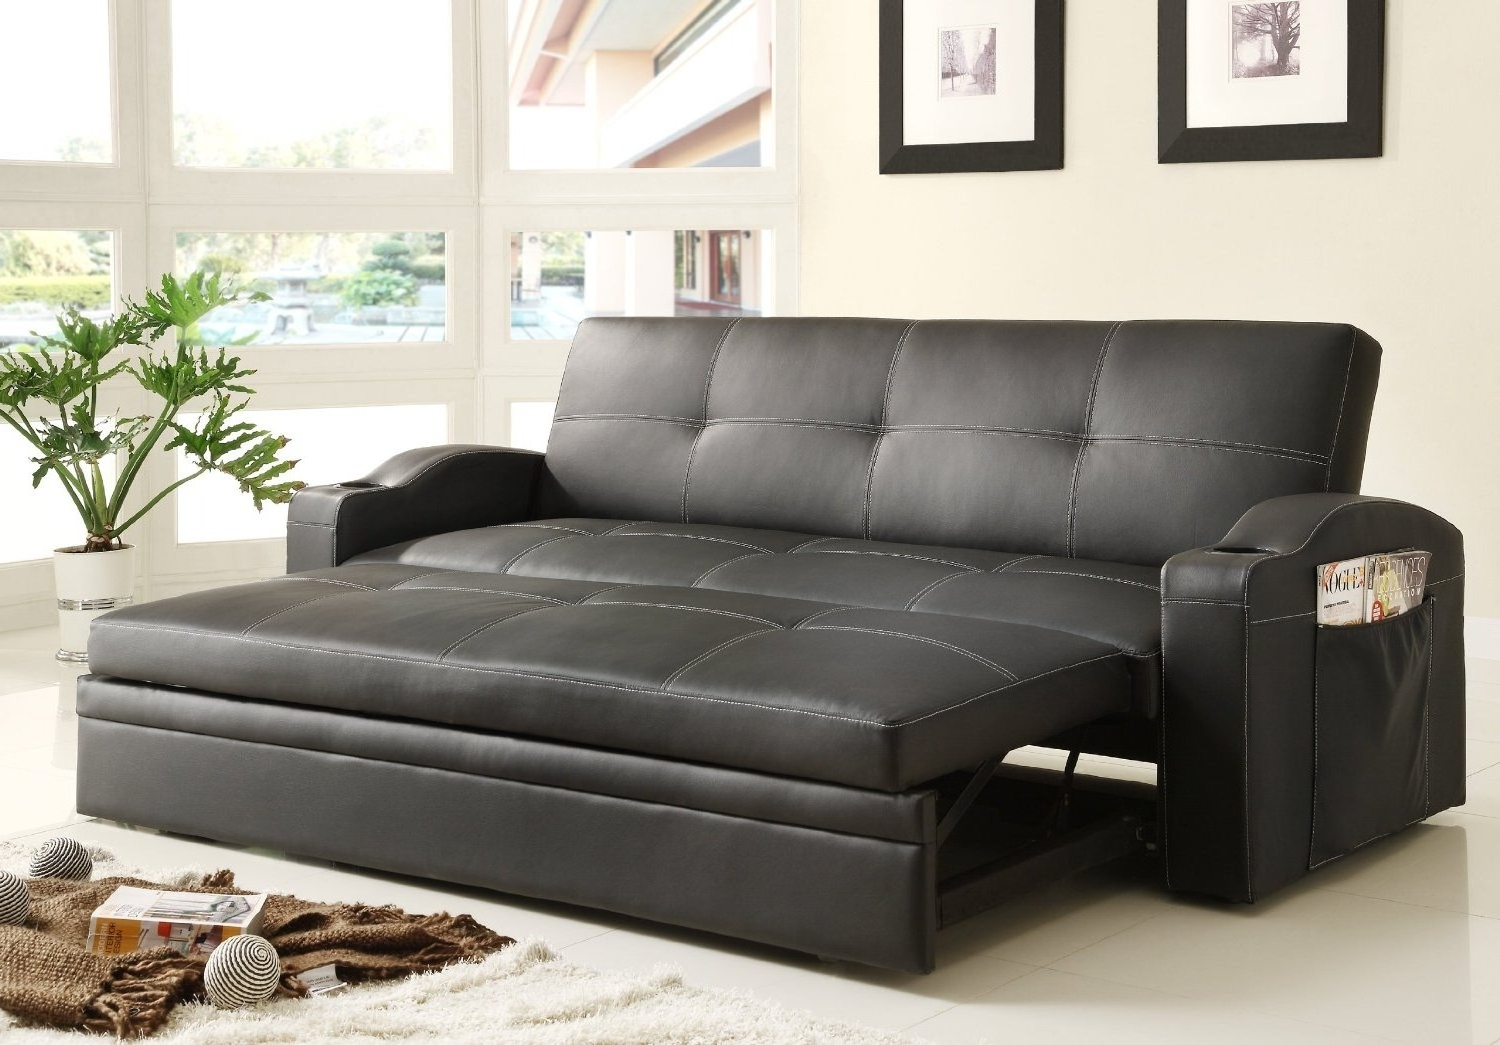 Famous Adjustable Queen Size Sofa Bed Black Color Upholstered In Black Bi Pertaining To Adjustable Sectional Sofas With Queen Bed (View 3 of 15)